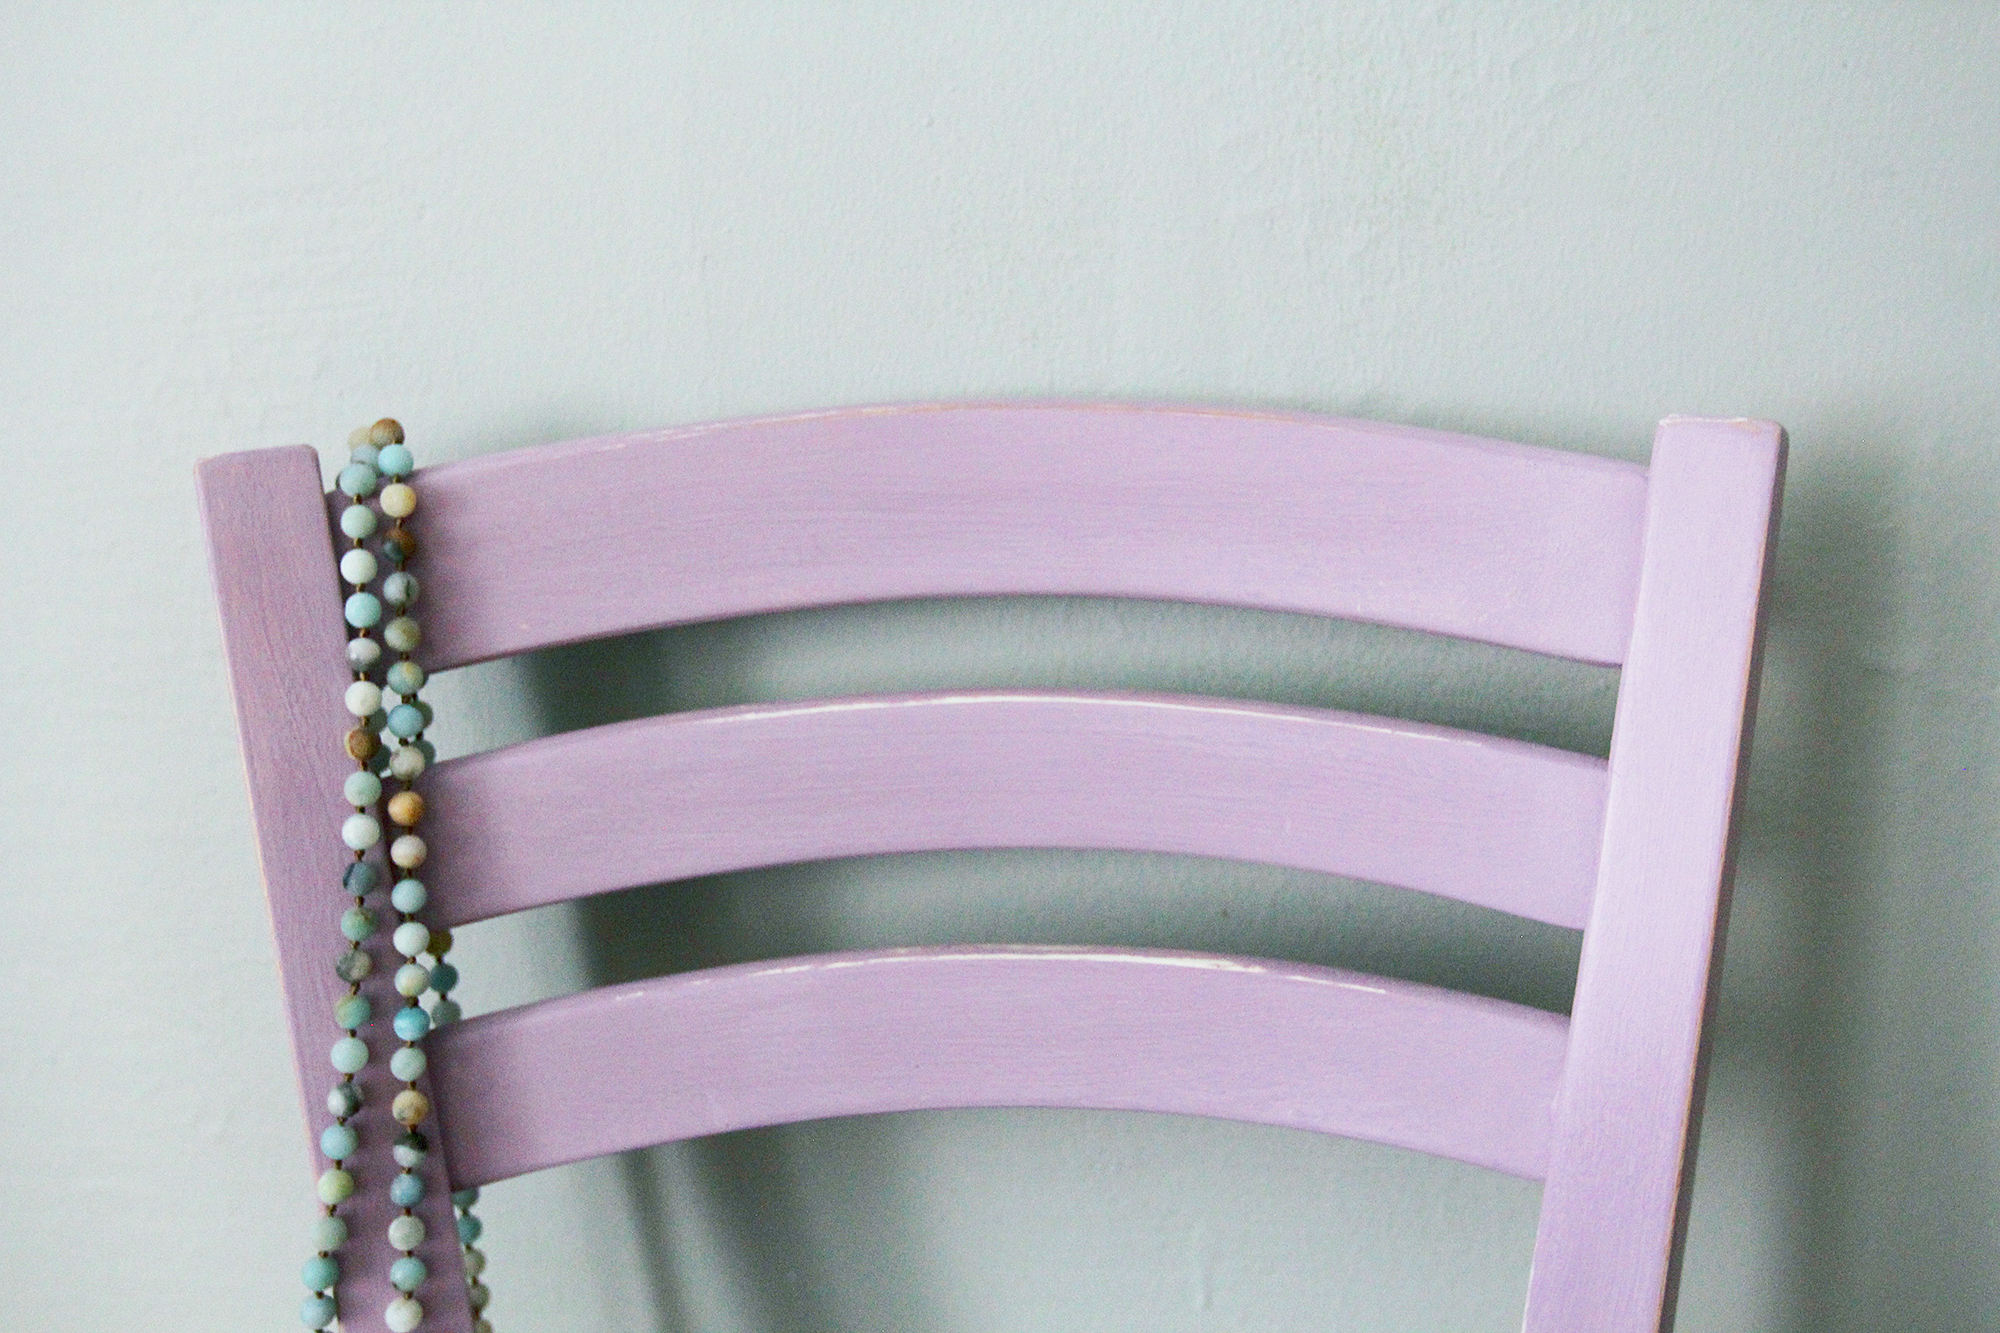 jo-torrijos-a-simpler-design-atlanta-painted-furniture-lilac-chair-annie-sloan-henrietta-2.jpg